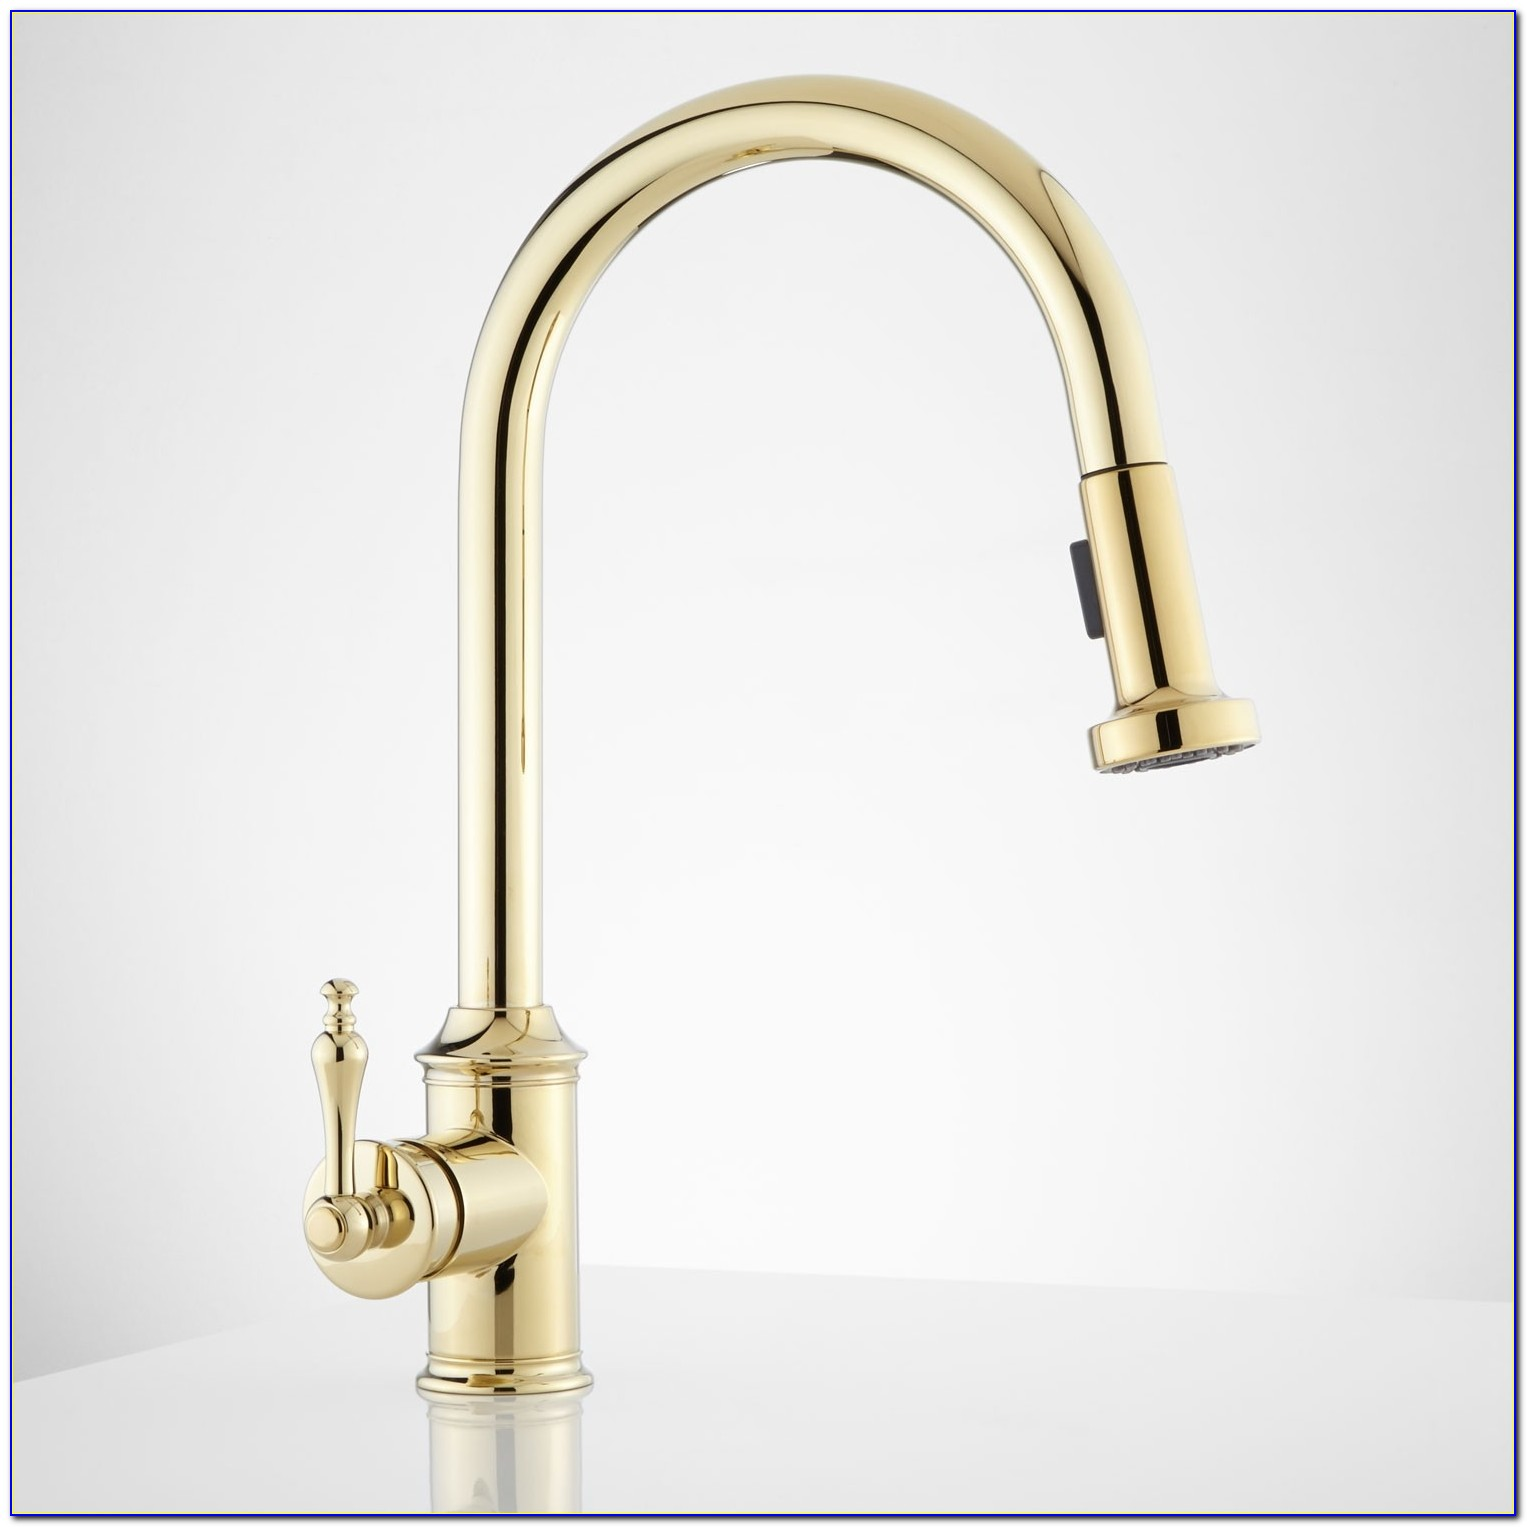 Brass And Chrome Kitchen Faucet Brass And Chrome Kitchen Faucet Kitchen Alluring Kitchen Faucet With Sprayer For Interesting 1500 X 1500